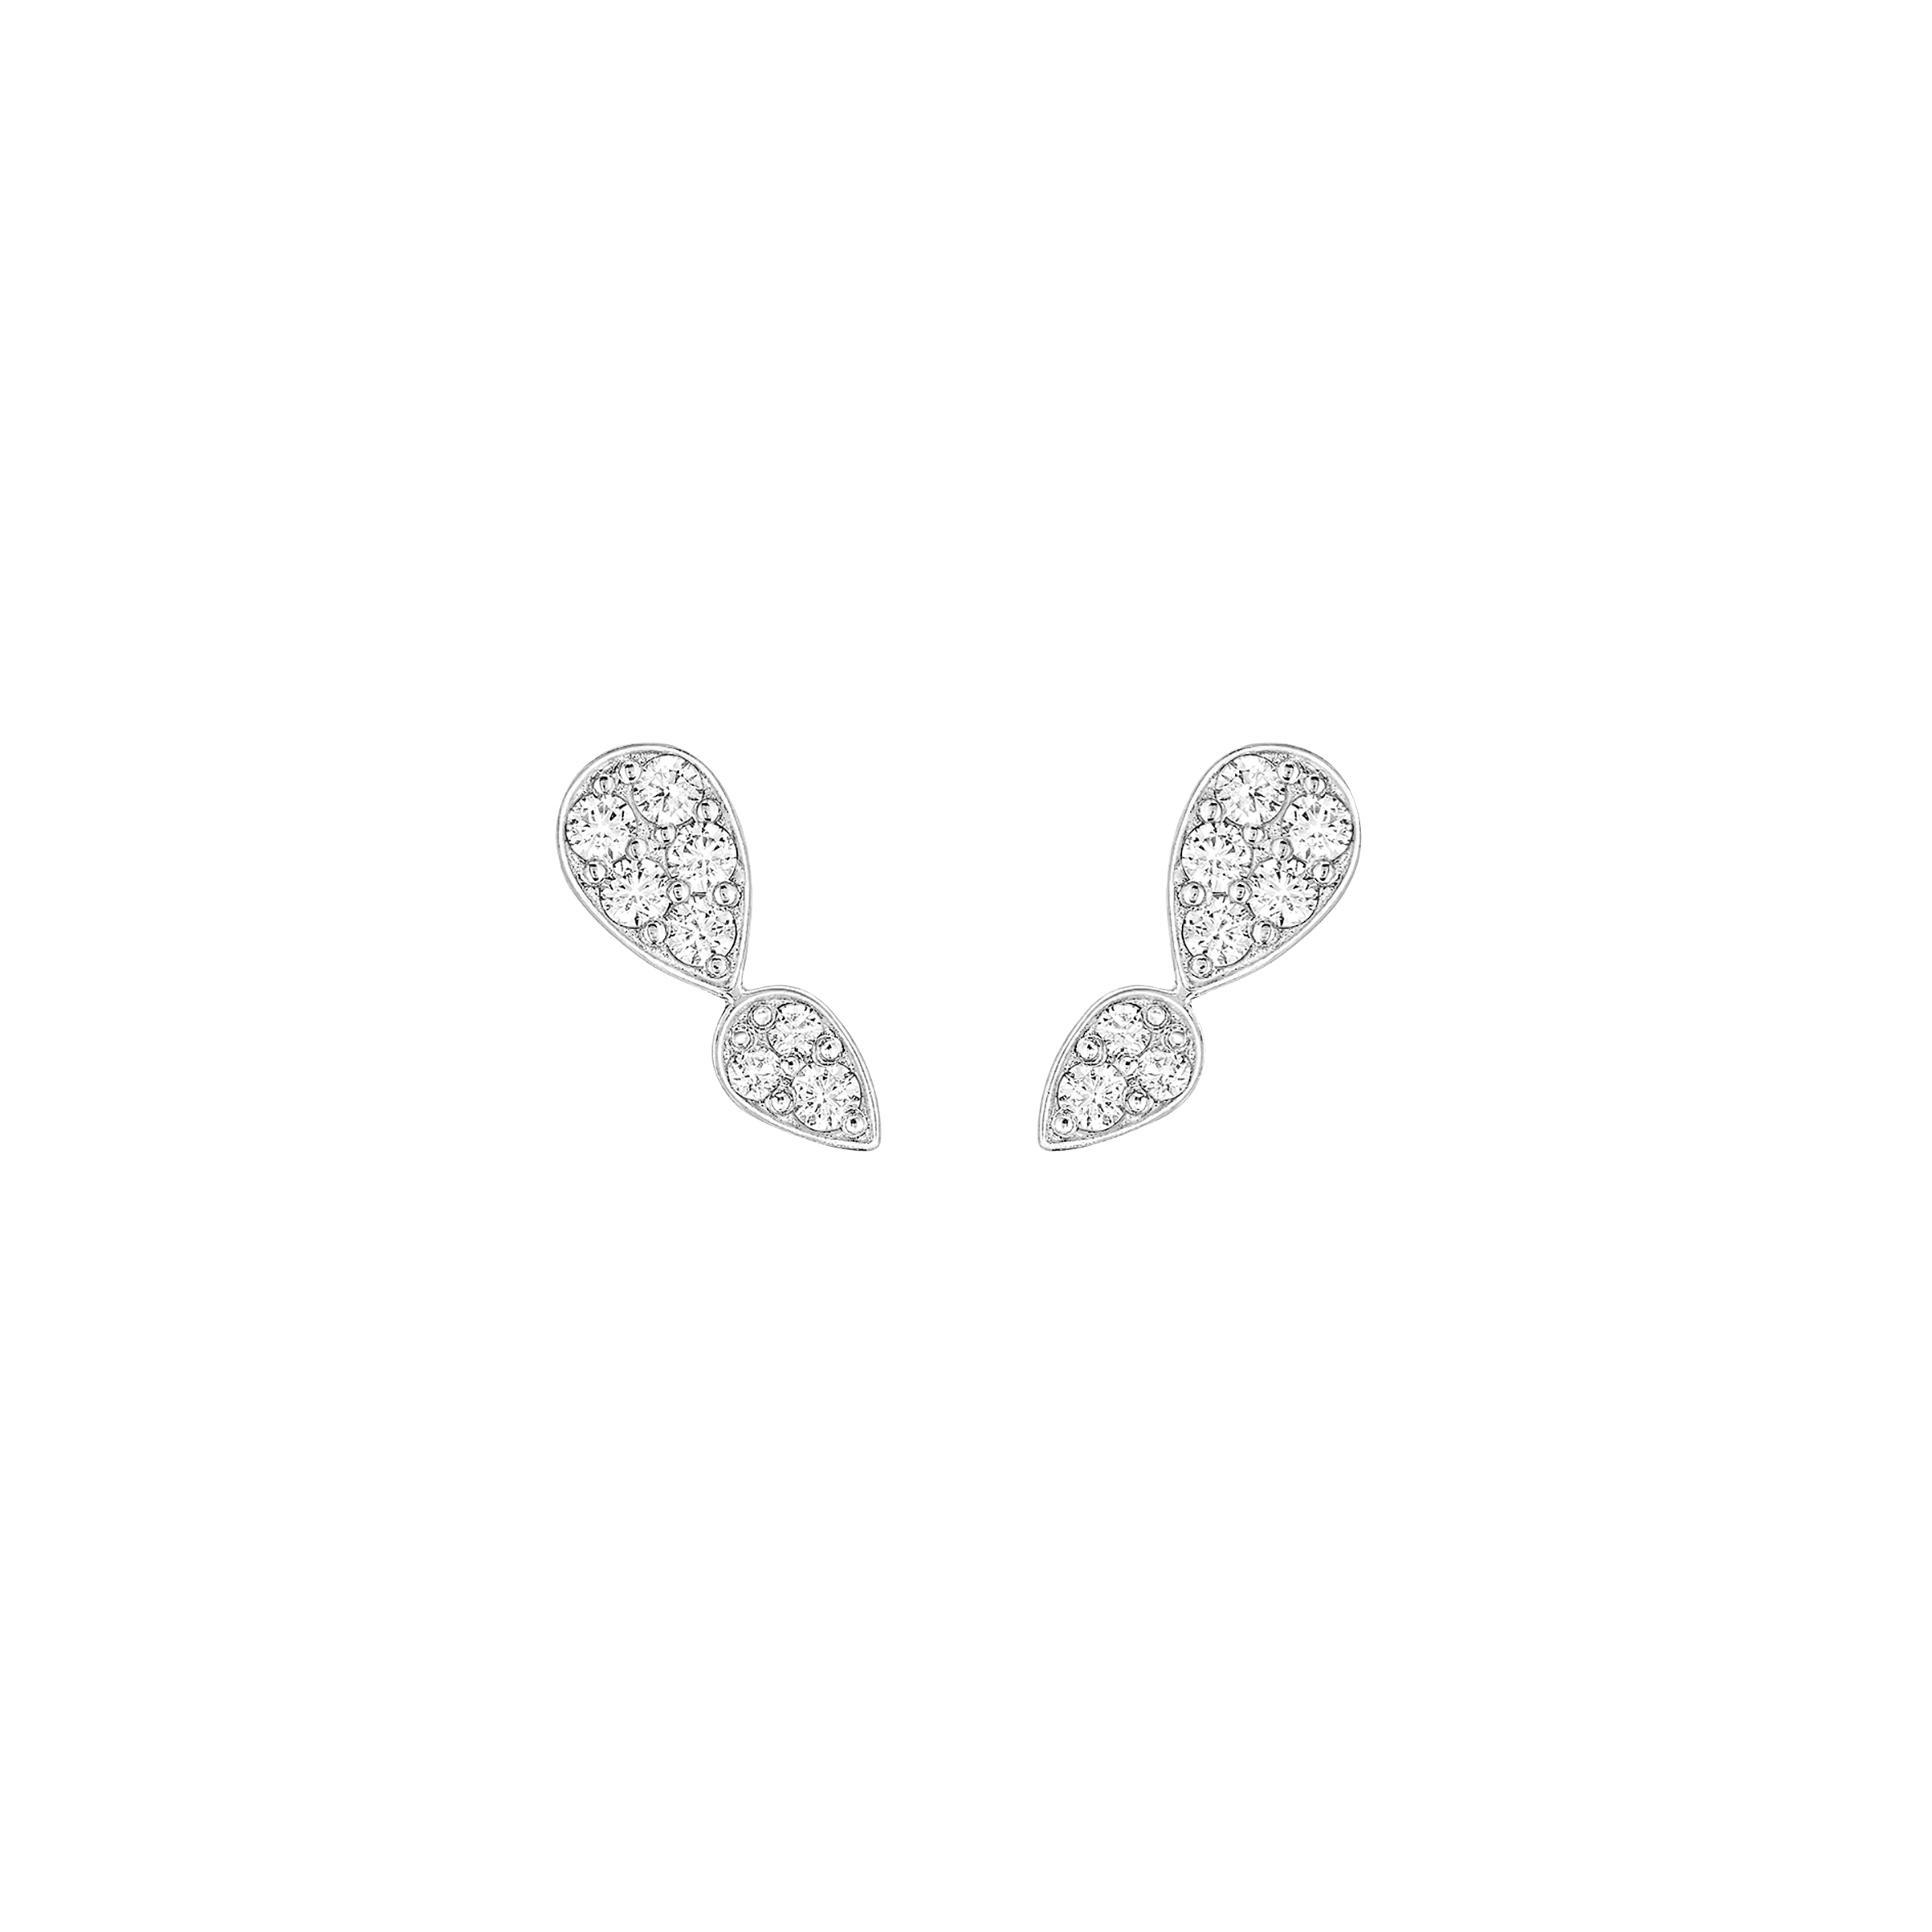 Earrings Alexandra for Burma - White Gold